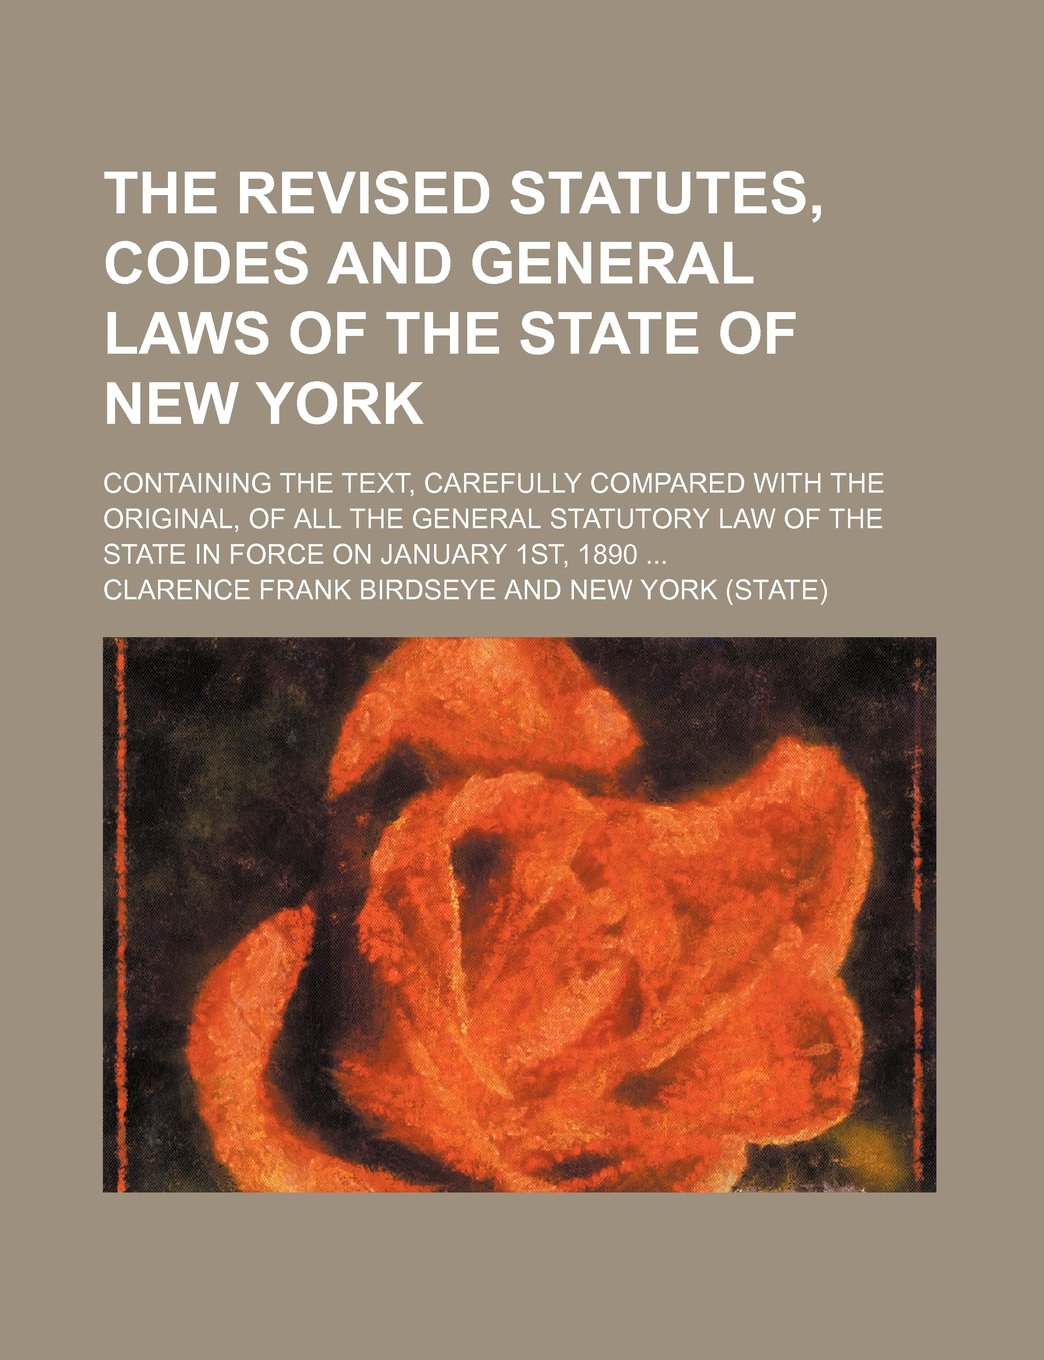 The revised statutes, codes and general laws of the State of New York; containing the text, carefully compared with the original, of all the general ... of the state in force on January 1st, 1890 PDF